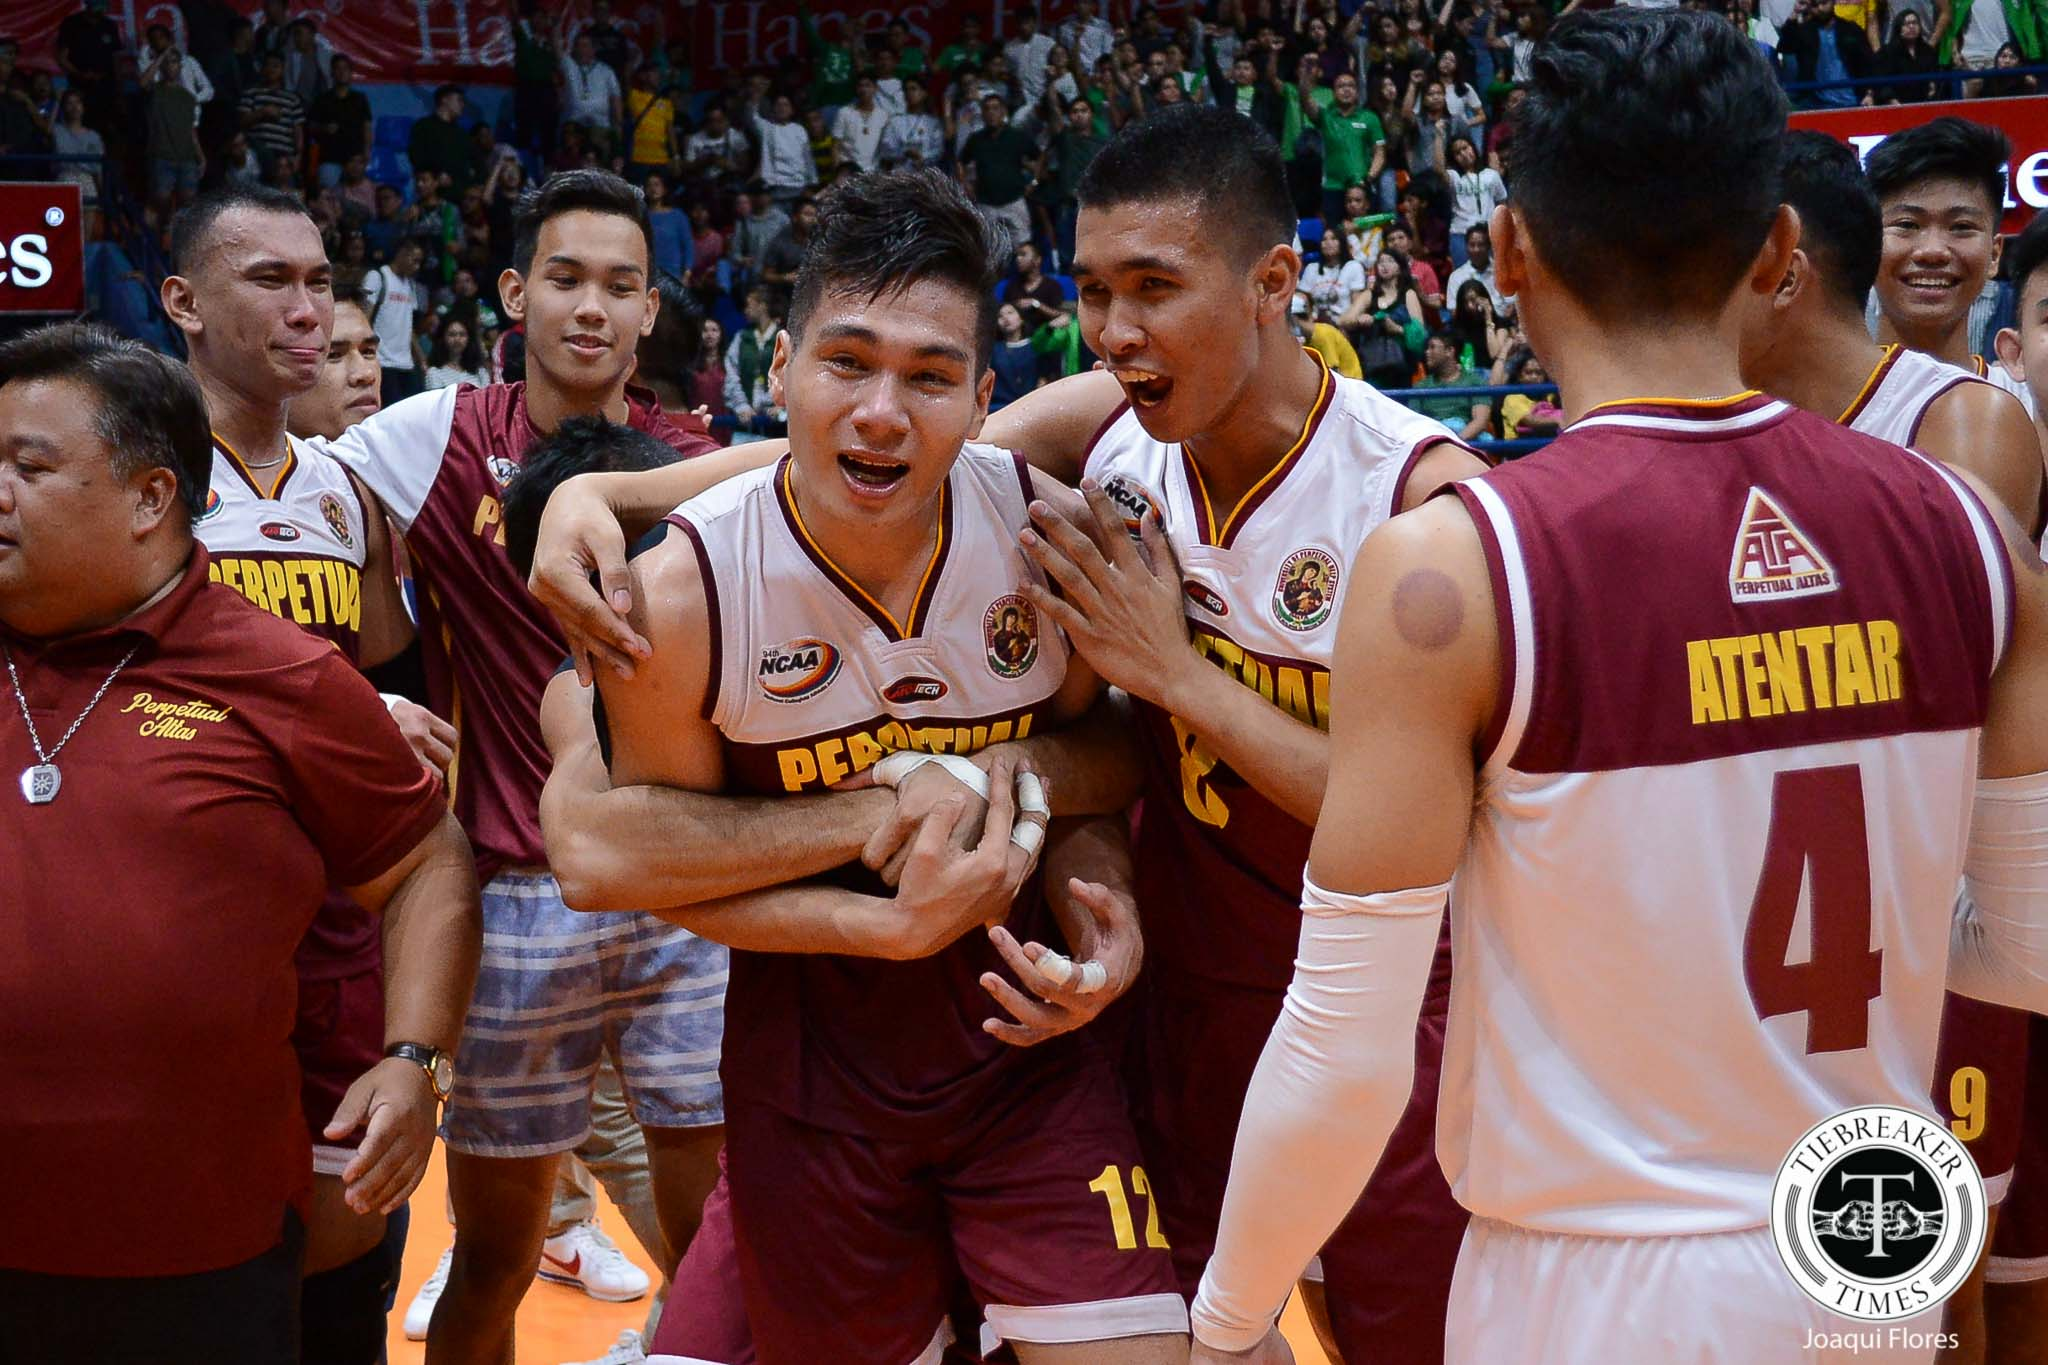 Tiebreaker Times Still not at their peak, Perpetual Altas already gunning for three-peat NCAA News UPHSD Volleyball  Sammy Acaylar Perpetual Men's Volleyball NCAA Season 94 Men's Volleyball NCAA Season 94